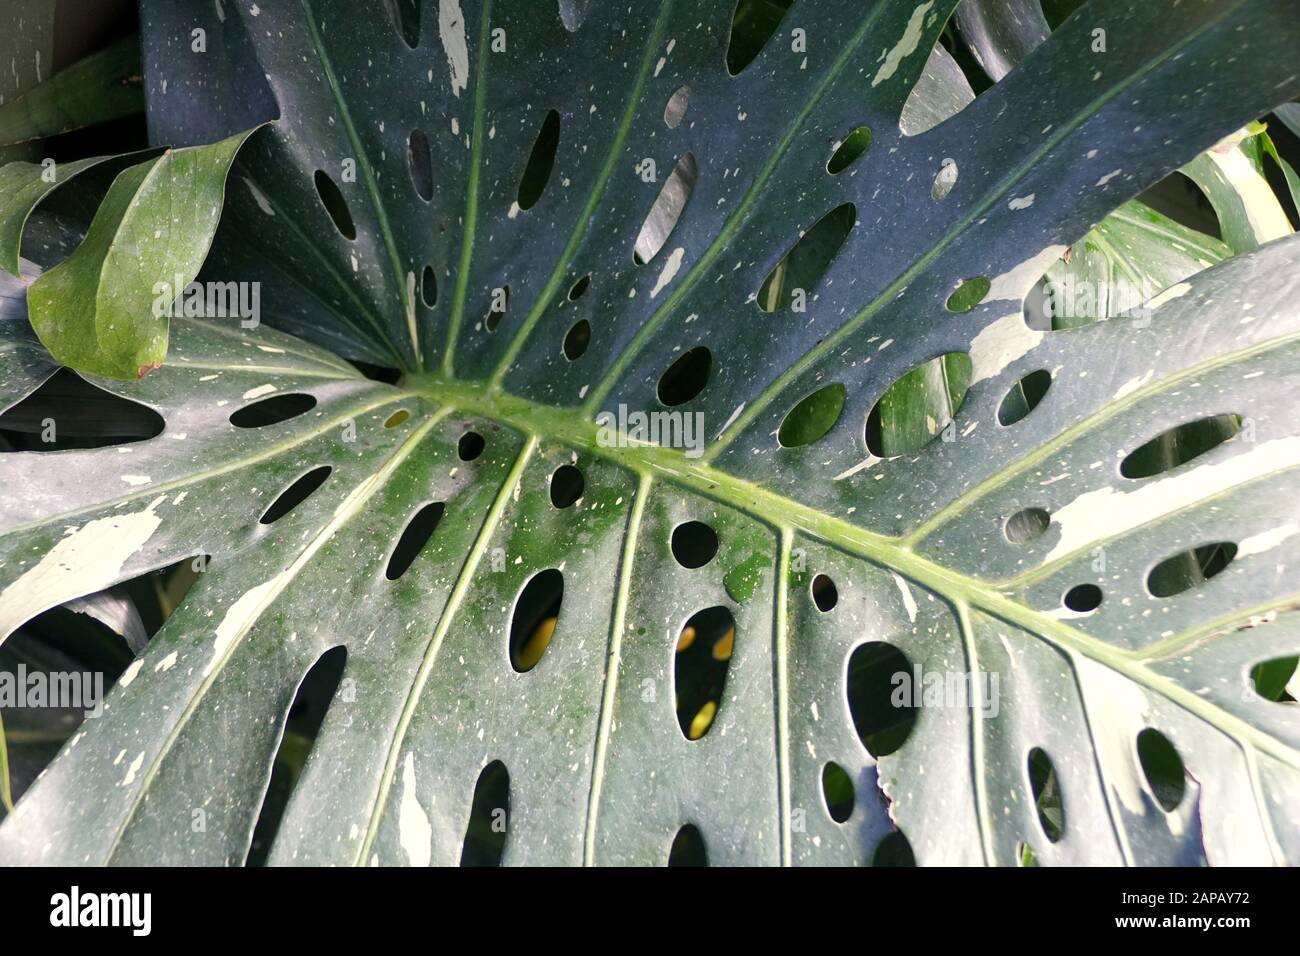 Unique Green Leaves Of Swiss Cheese Variegata Tropical Plant Stock Photo Alamy